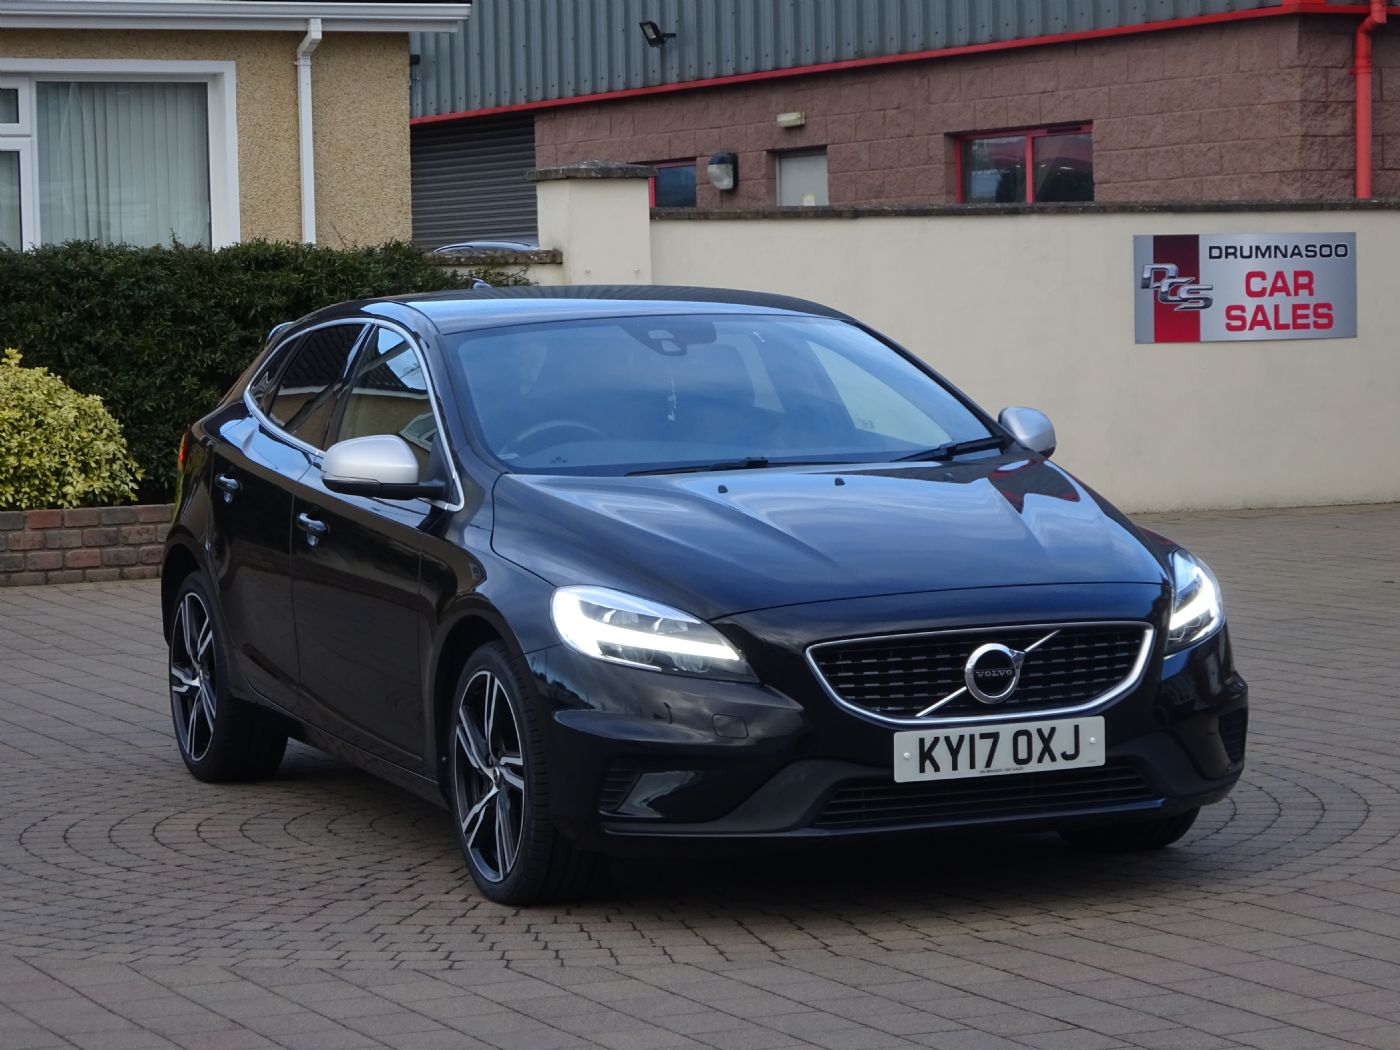 Volvo V40 2.0 150 R-Design Pro D3, Leather & Sat nav, £20 road tax